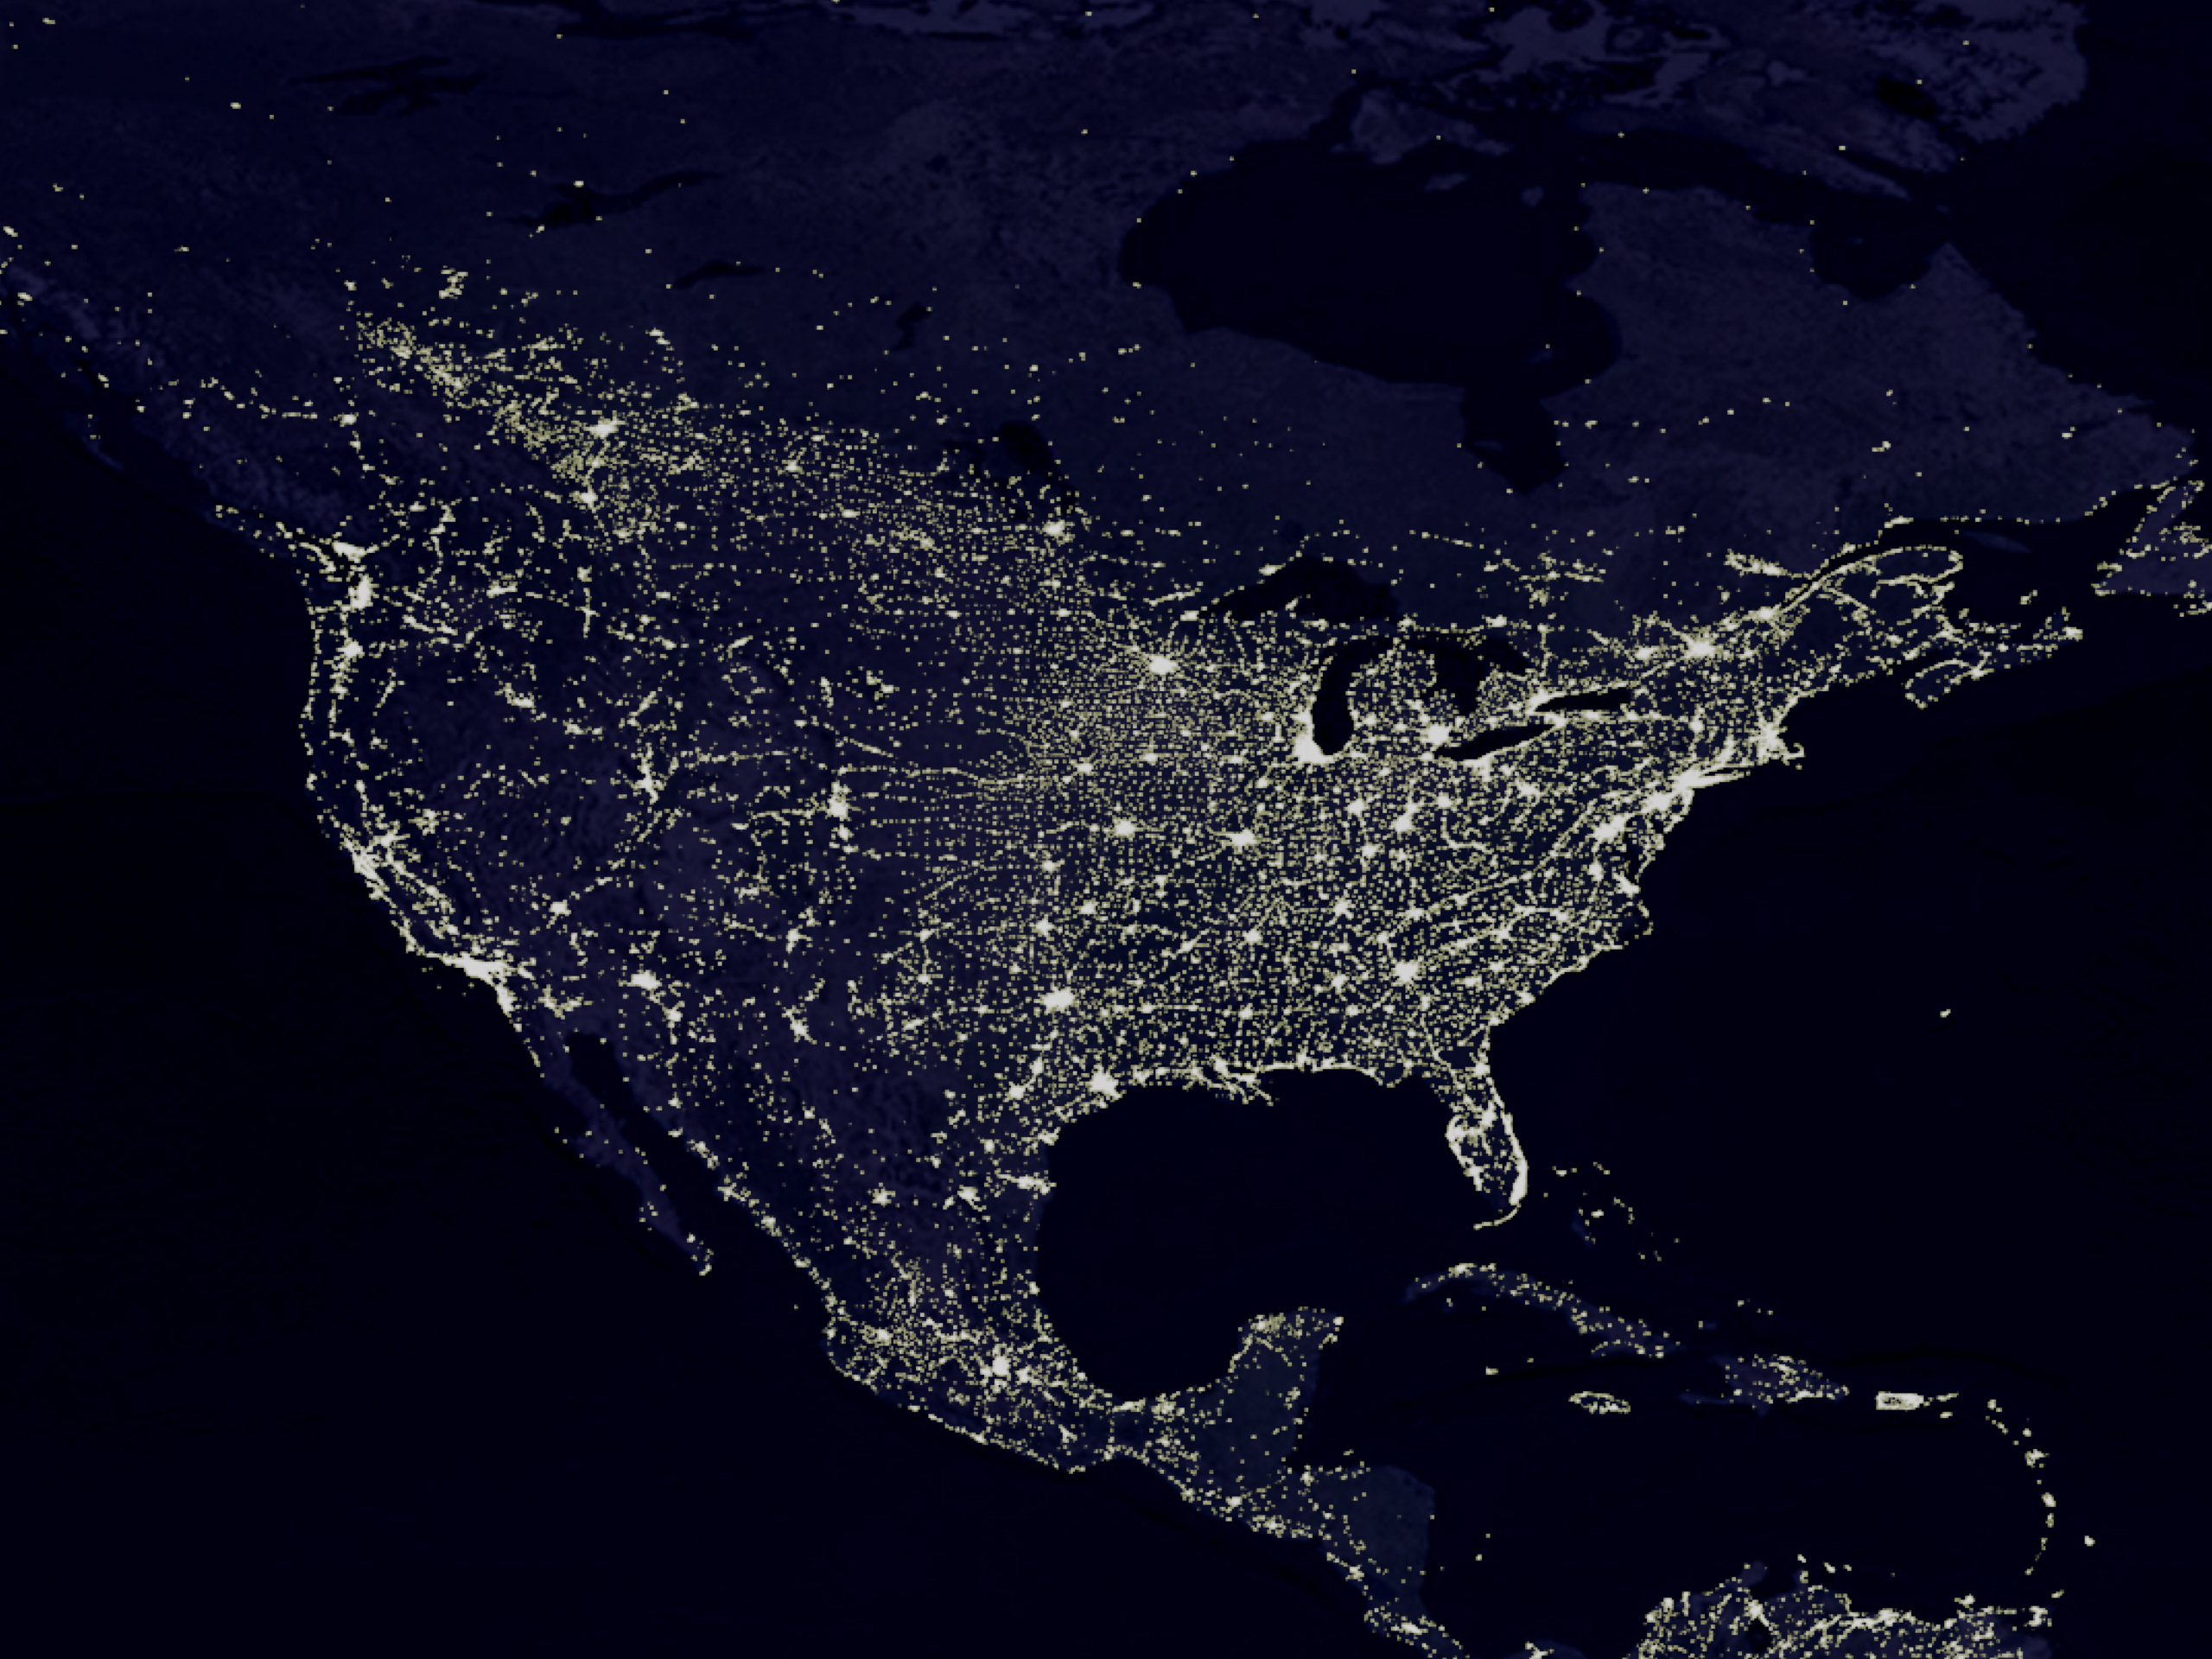 The Night Lights of the United States HD Wallpaper